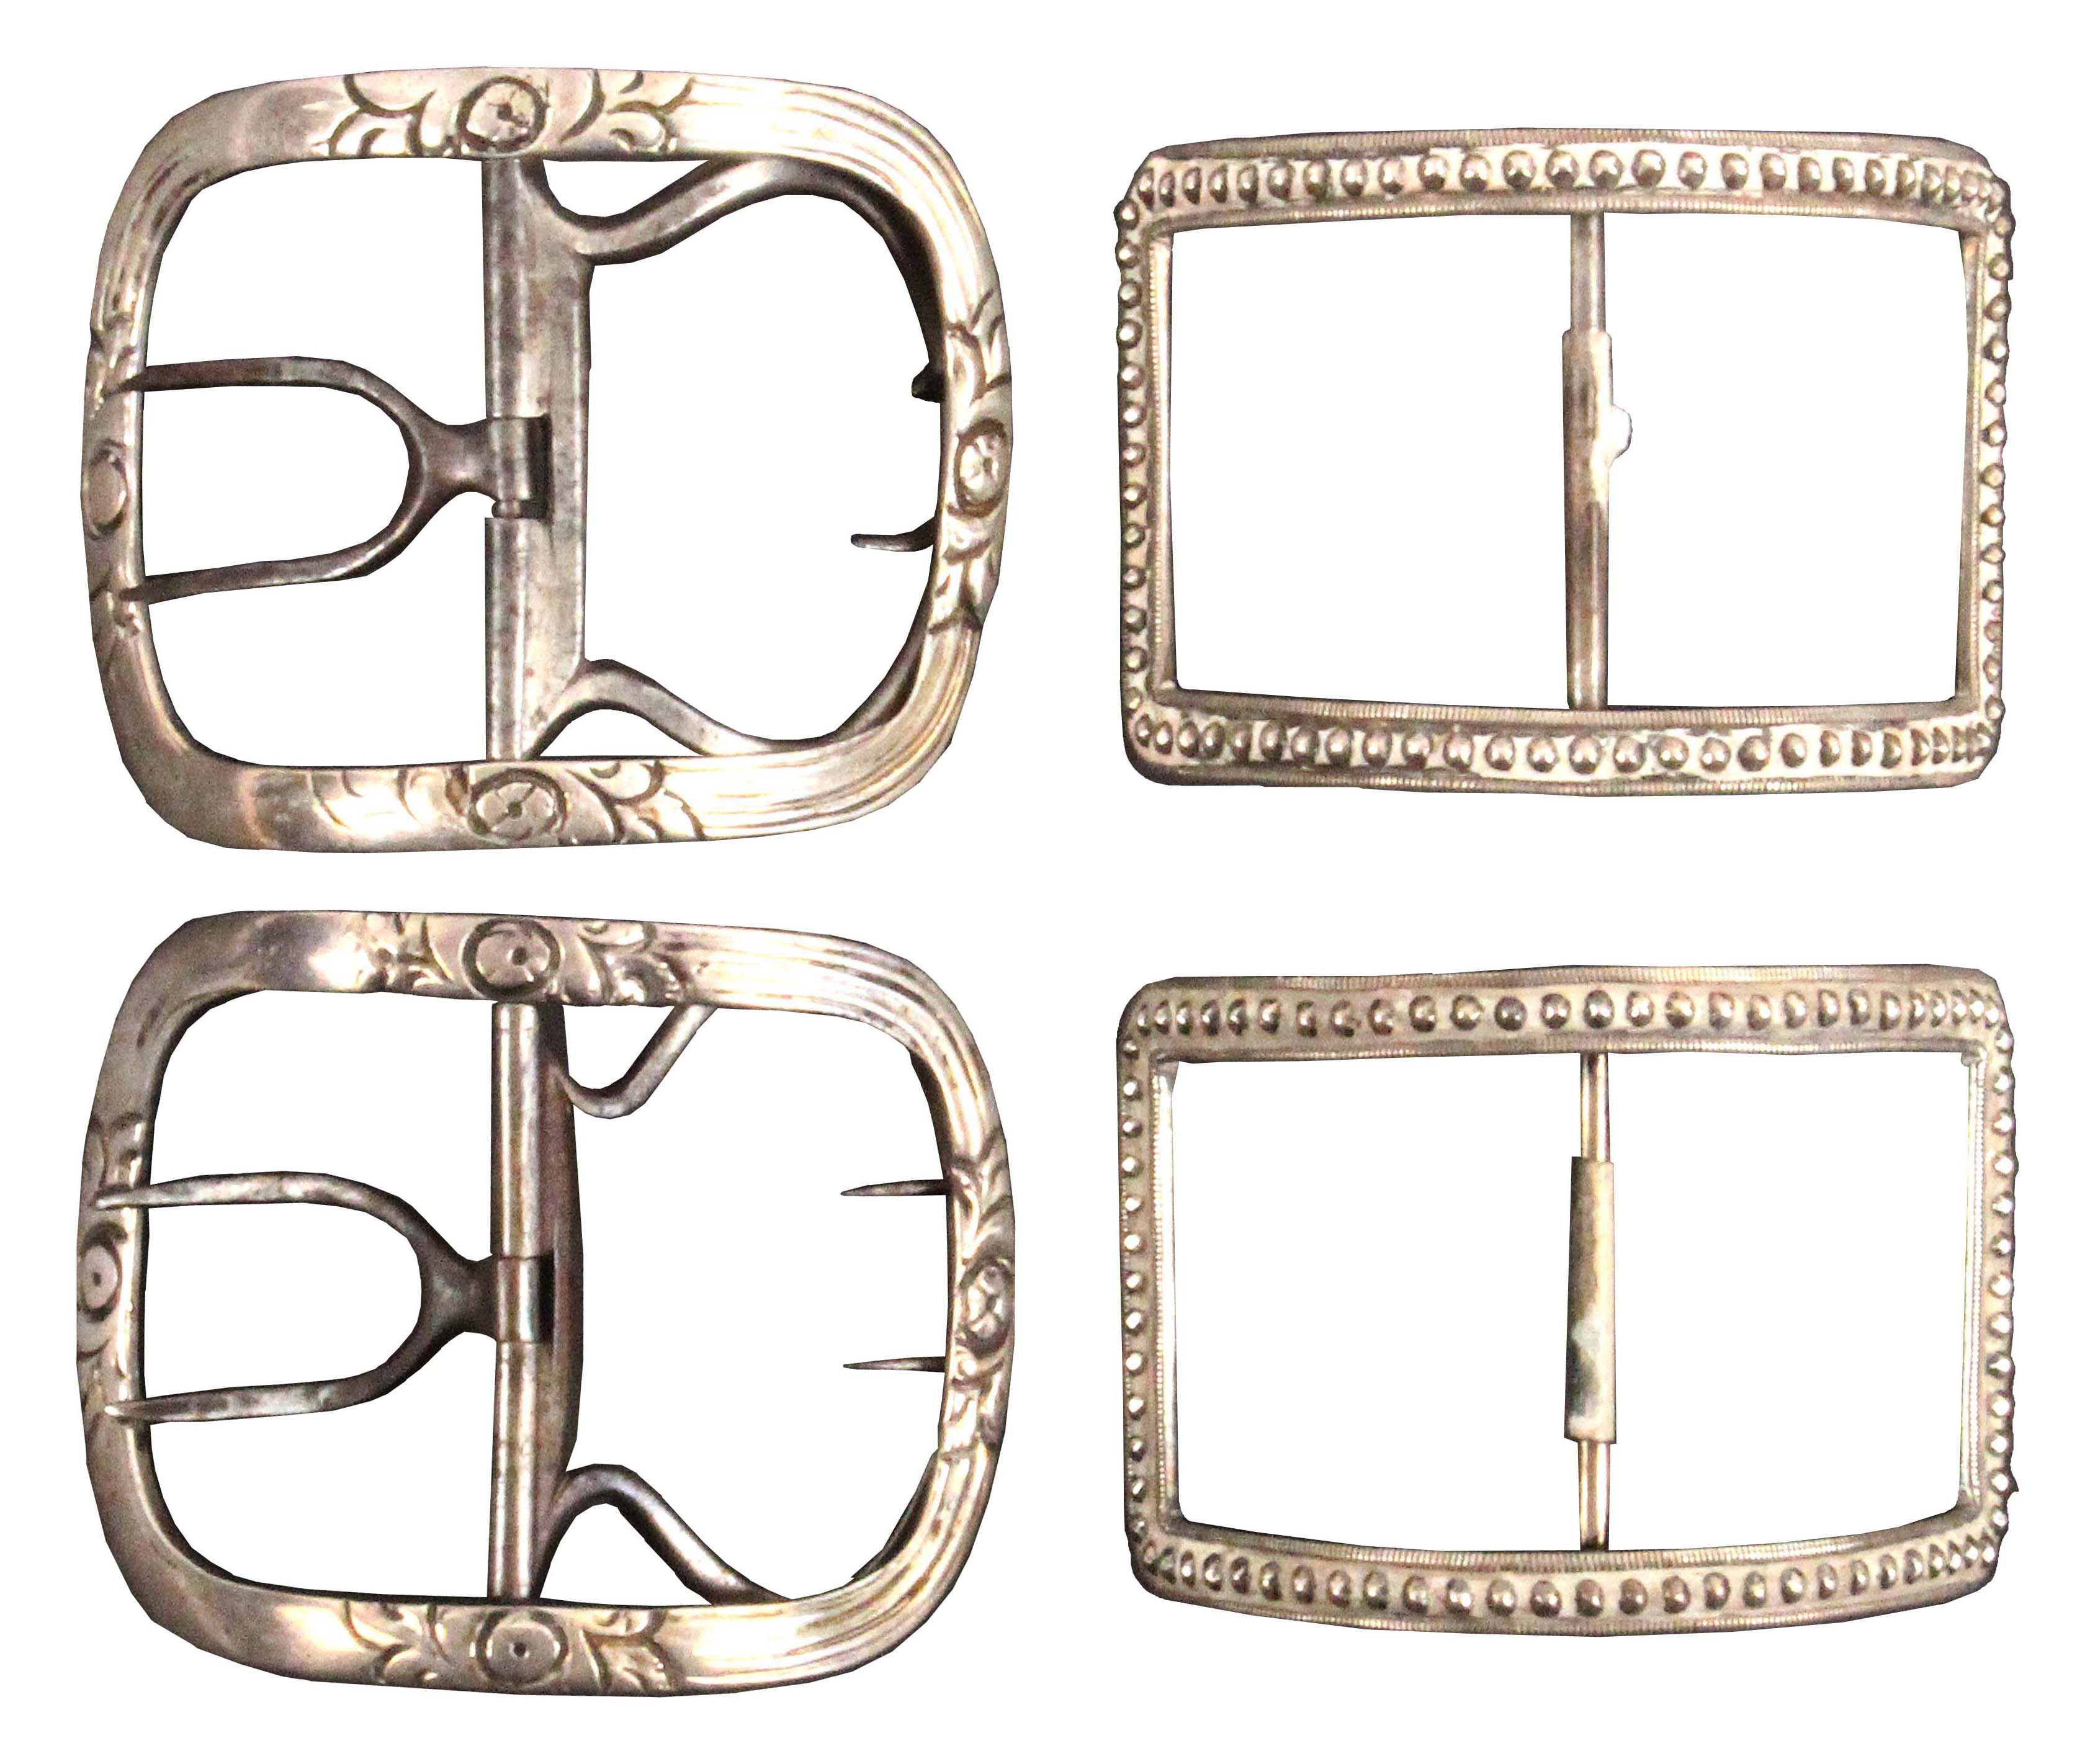 Two pairs of Georgian silver mounted shoe buckles, one with beadwork borders, 6cms, the other pair